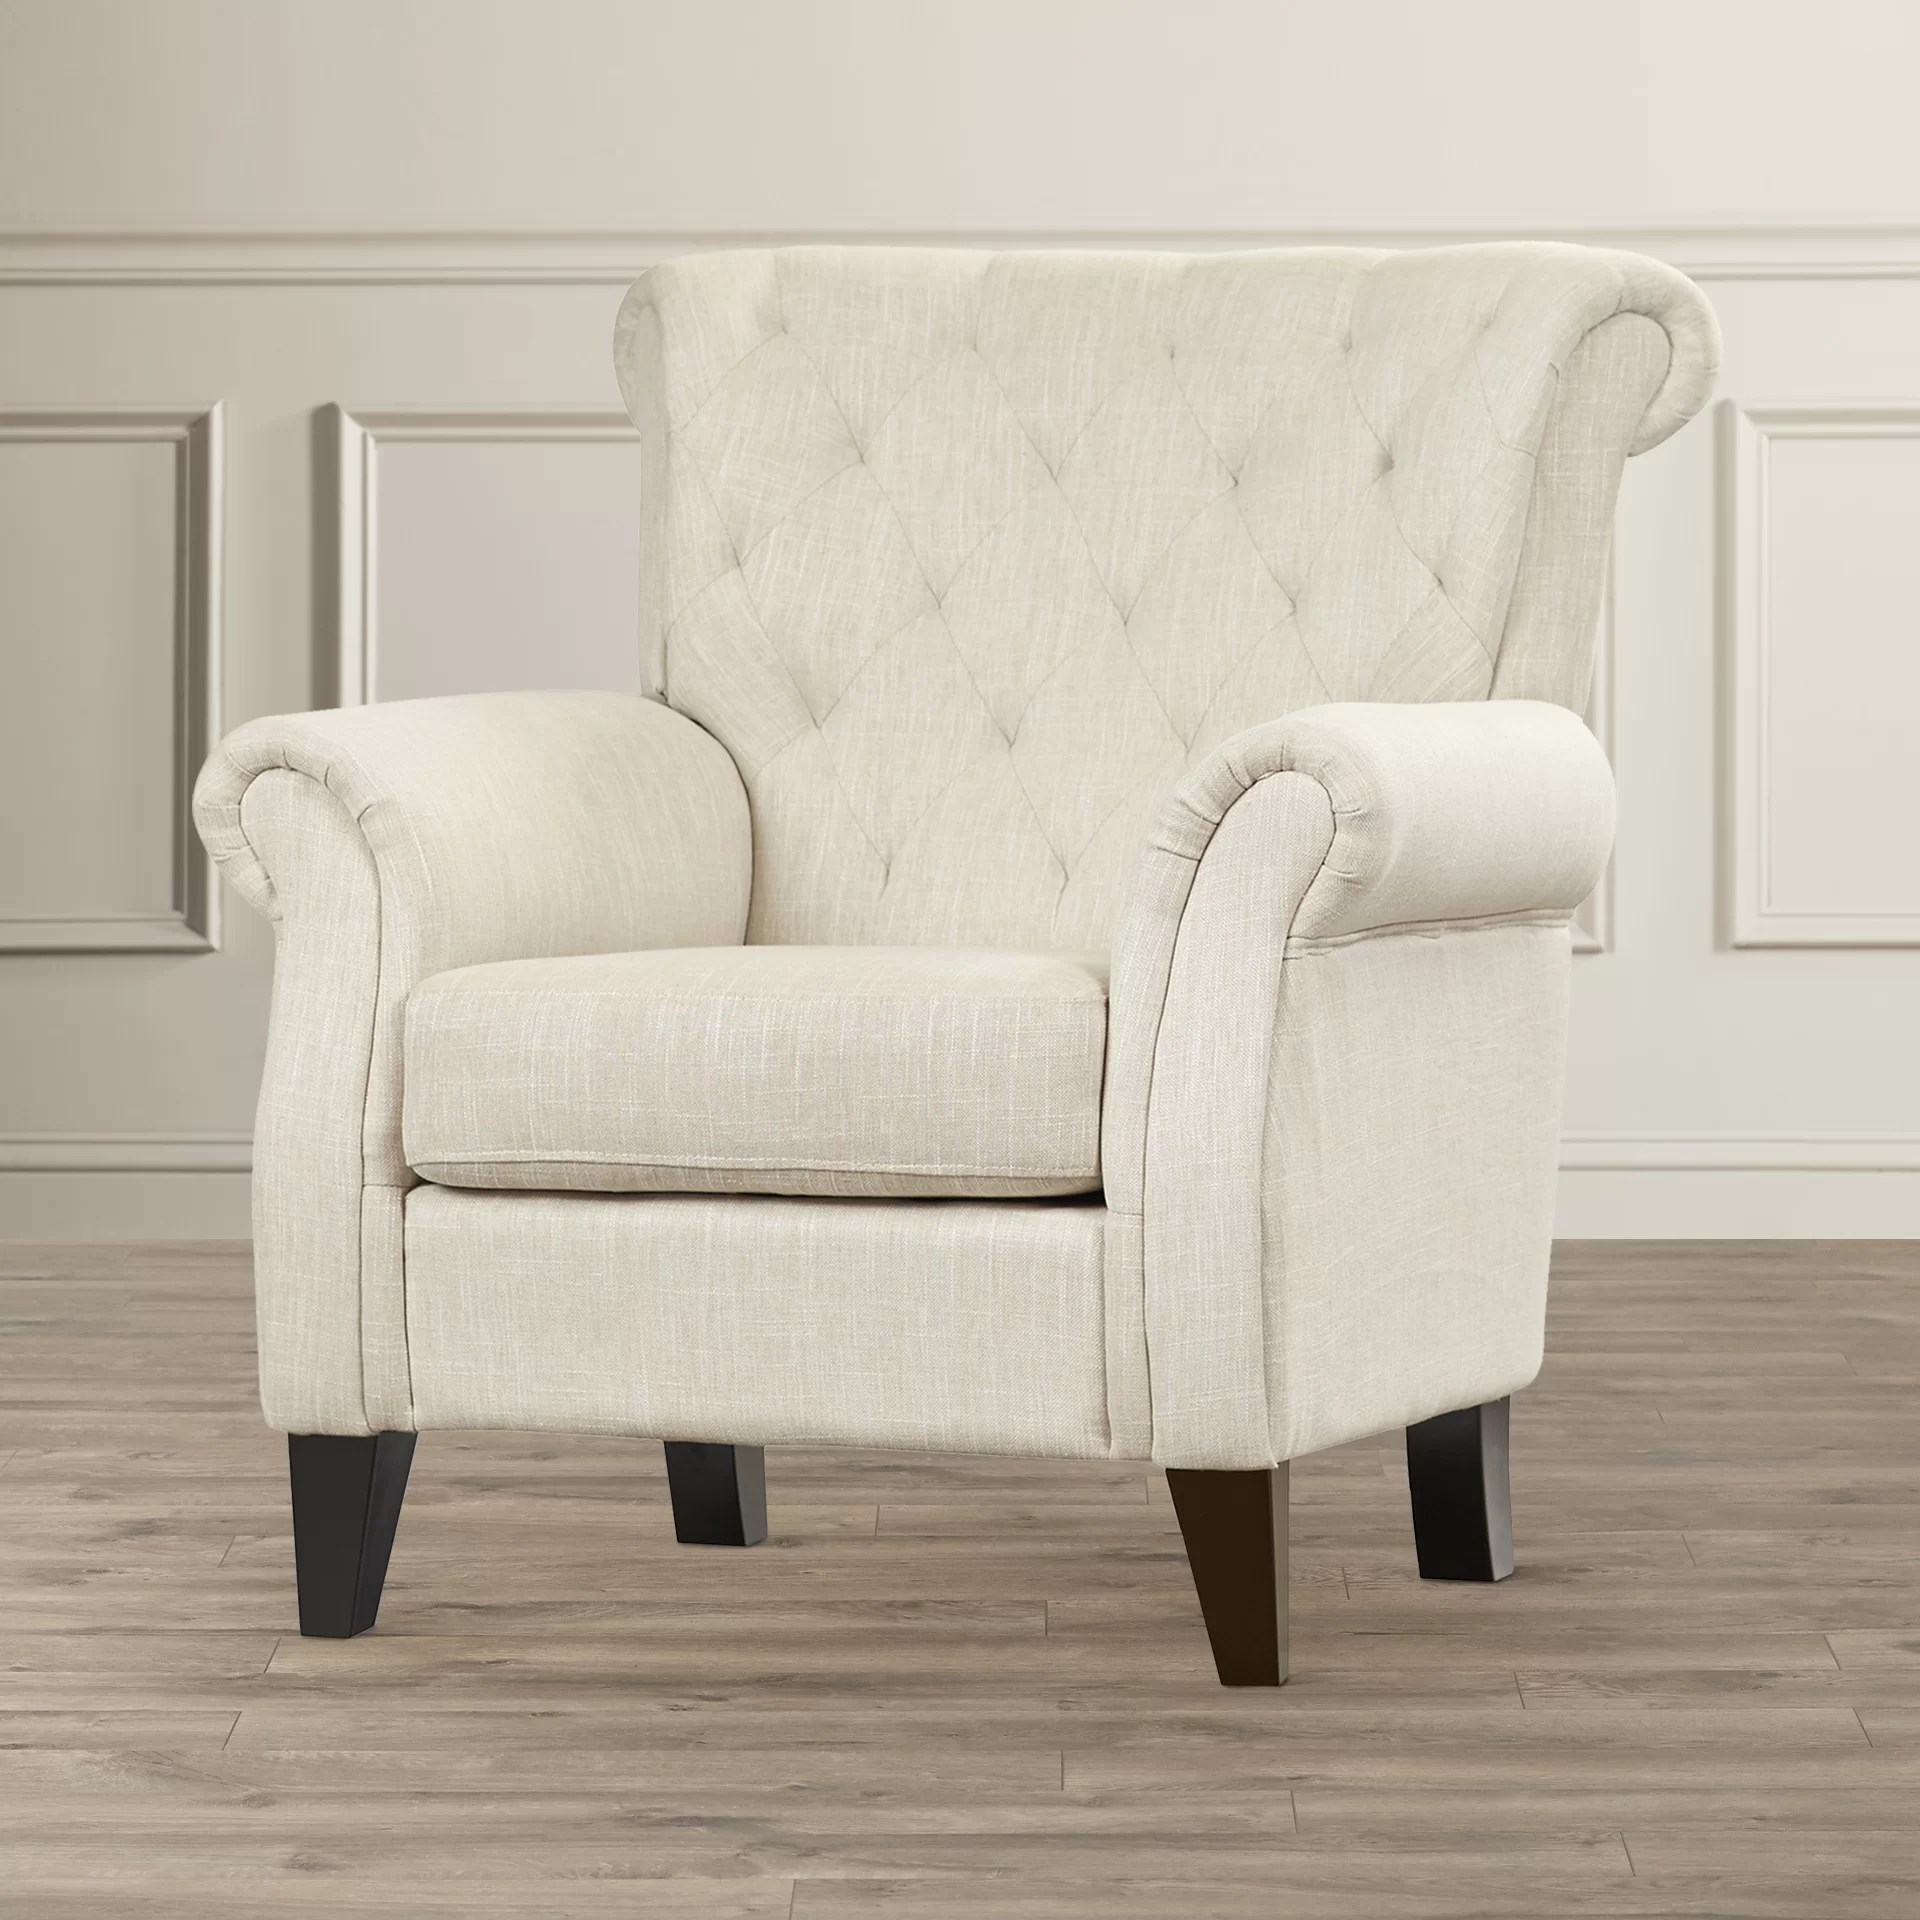 Upholstered Accent Chairs With Arms Alcott Hill Jaymee Tufted Upholstered Arm Chair And Reviews